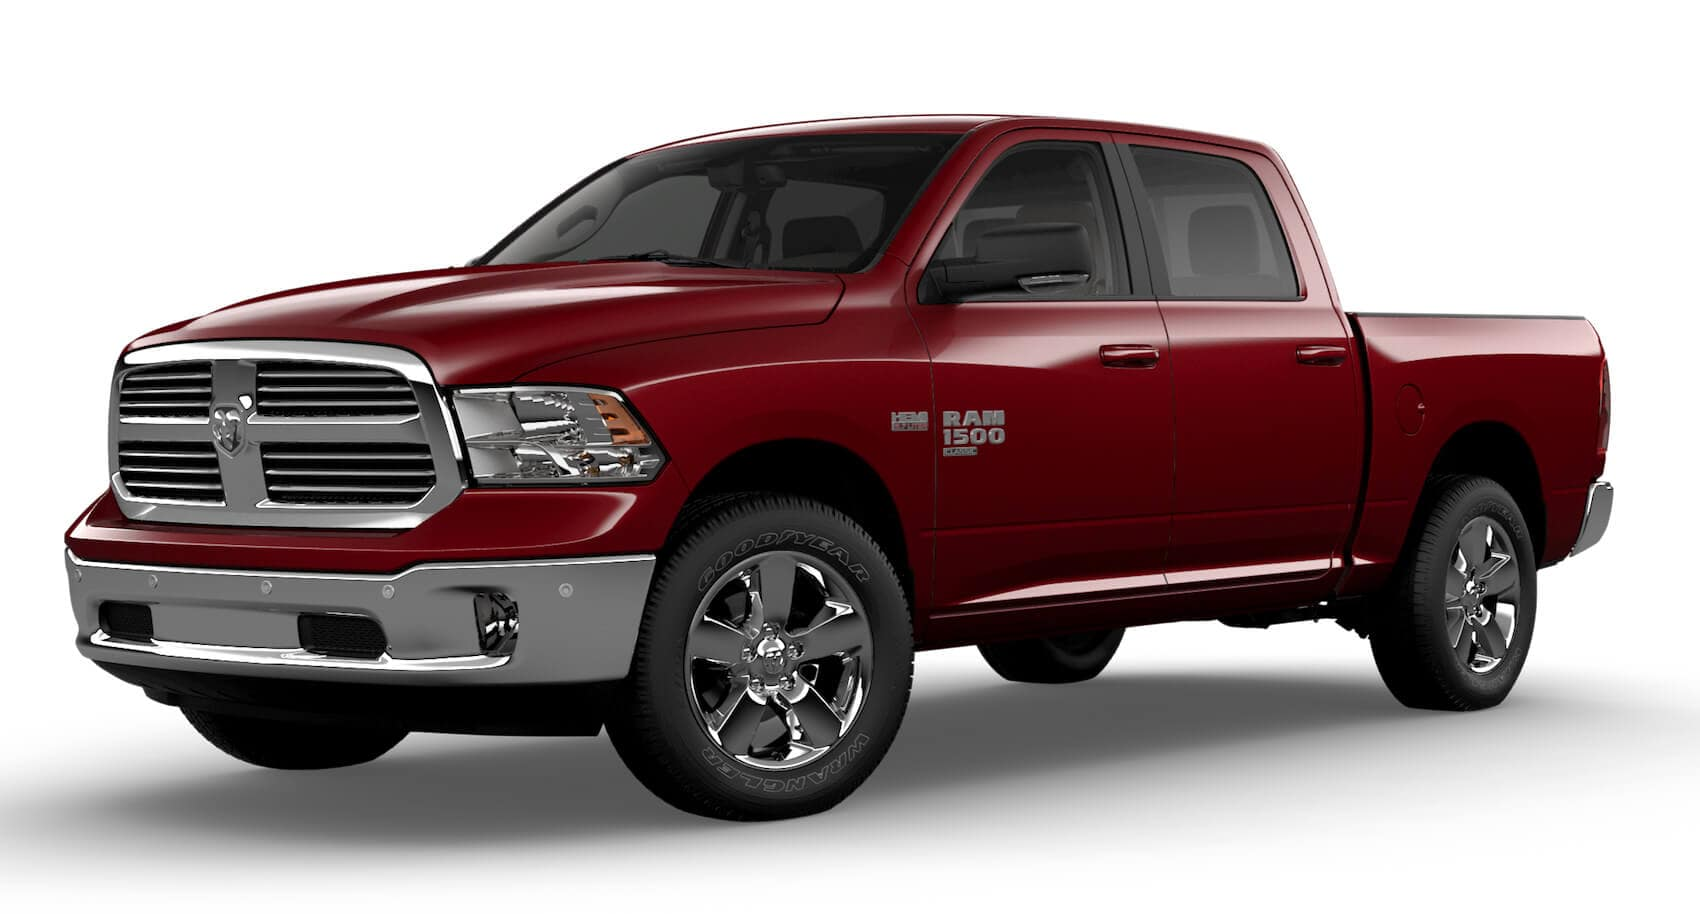 Certified pre-owned Ram 1500 near Chicago, IL